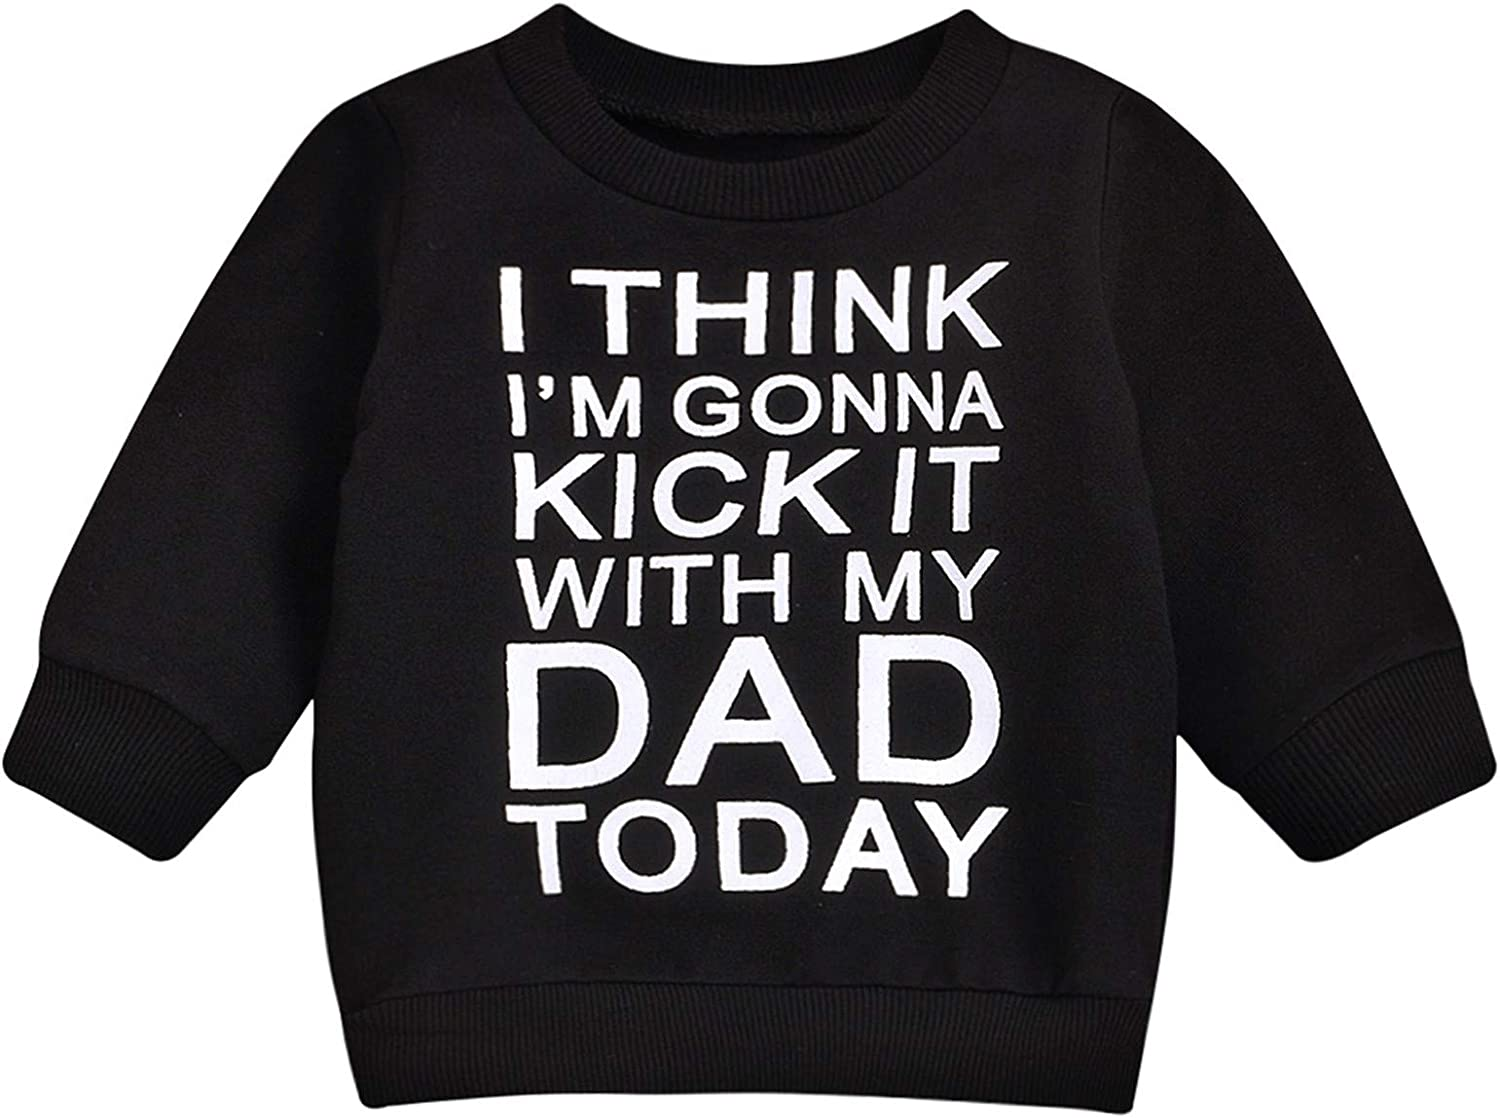 Baby Boy Girl T-Shirt Letter Print Tee Long Sleeve Pullover O-Neck Top Unisex Fall Winter Outfit